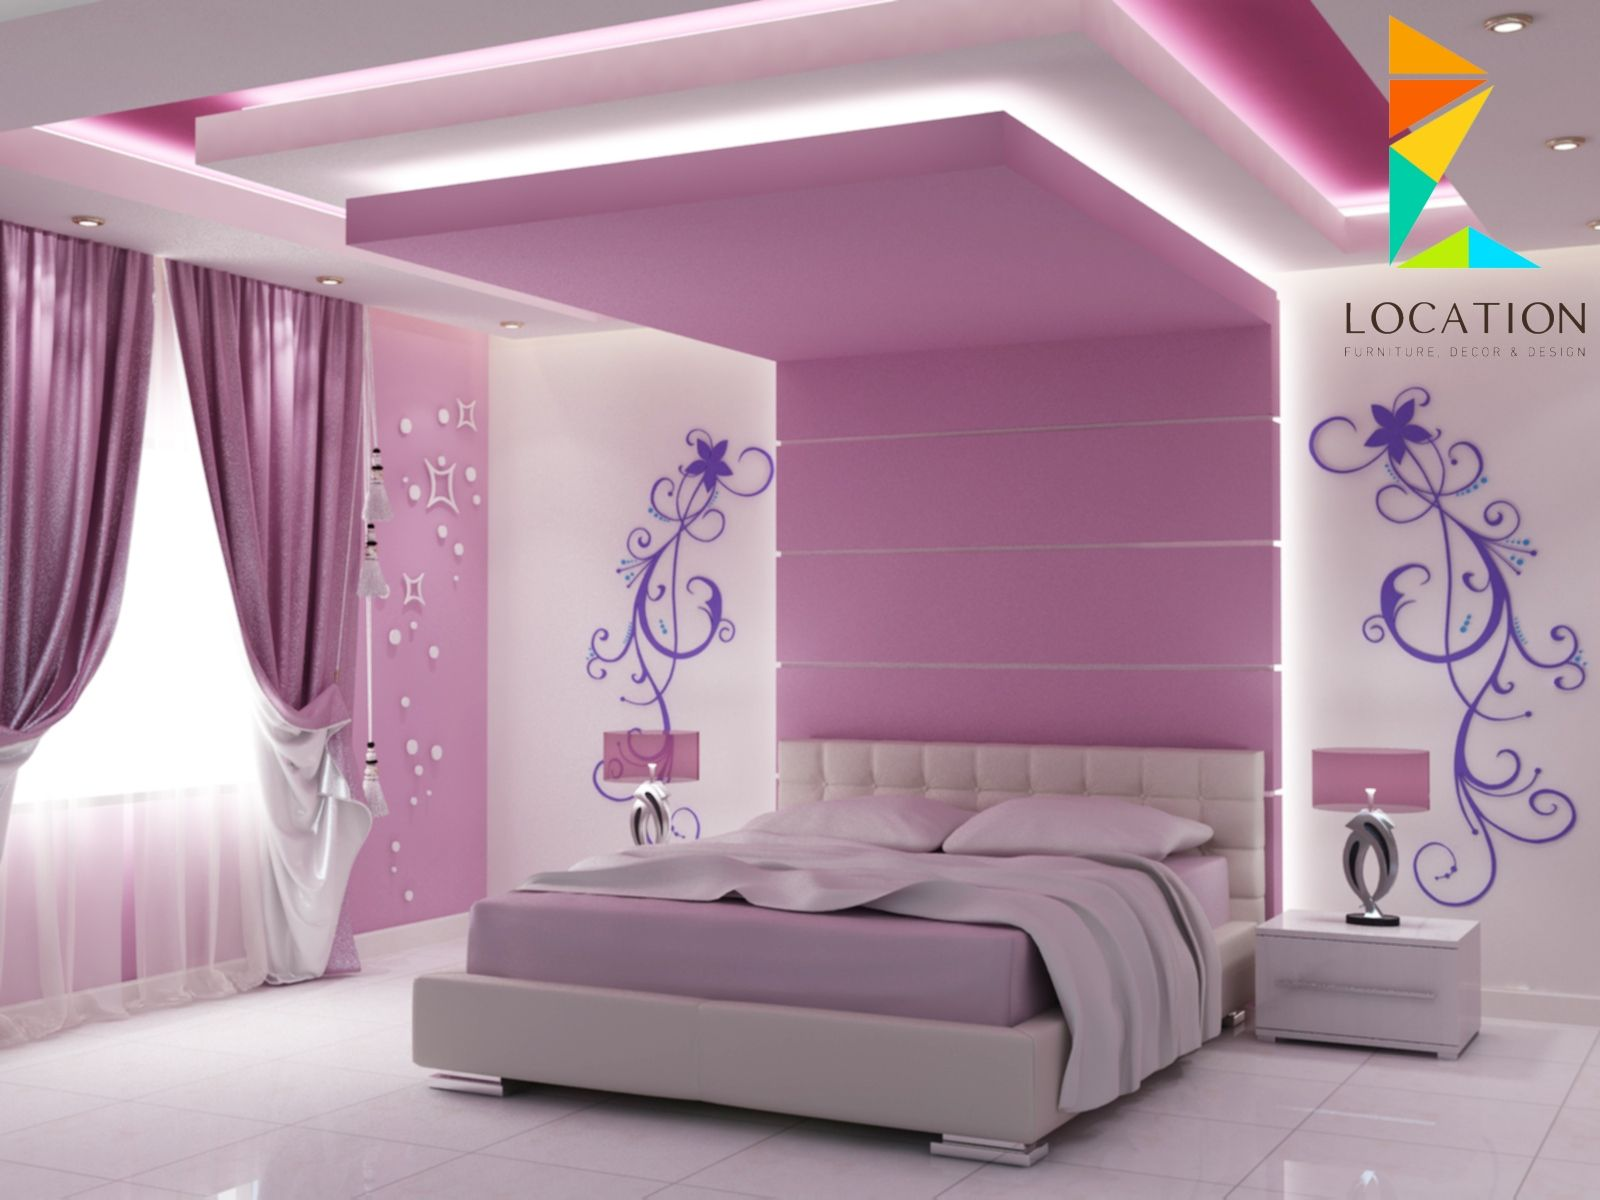 2017 2018 pinterest for Bedroom designs tamilnadu